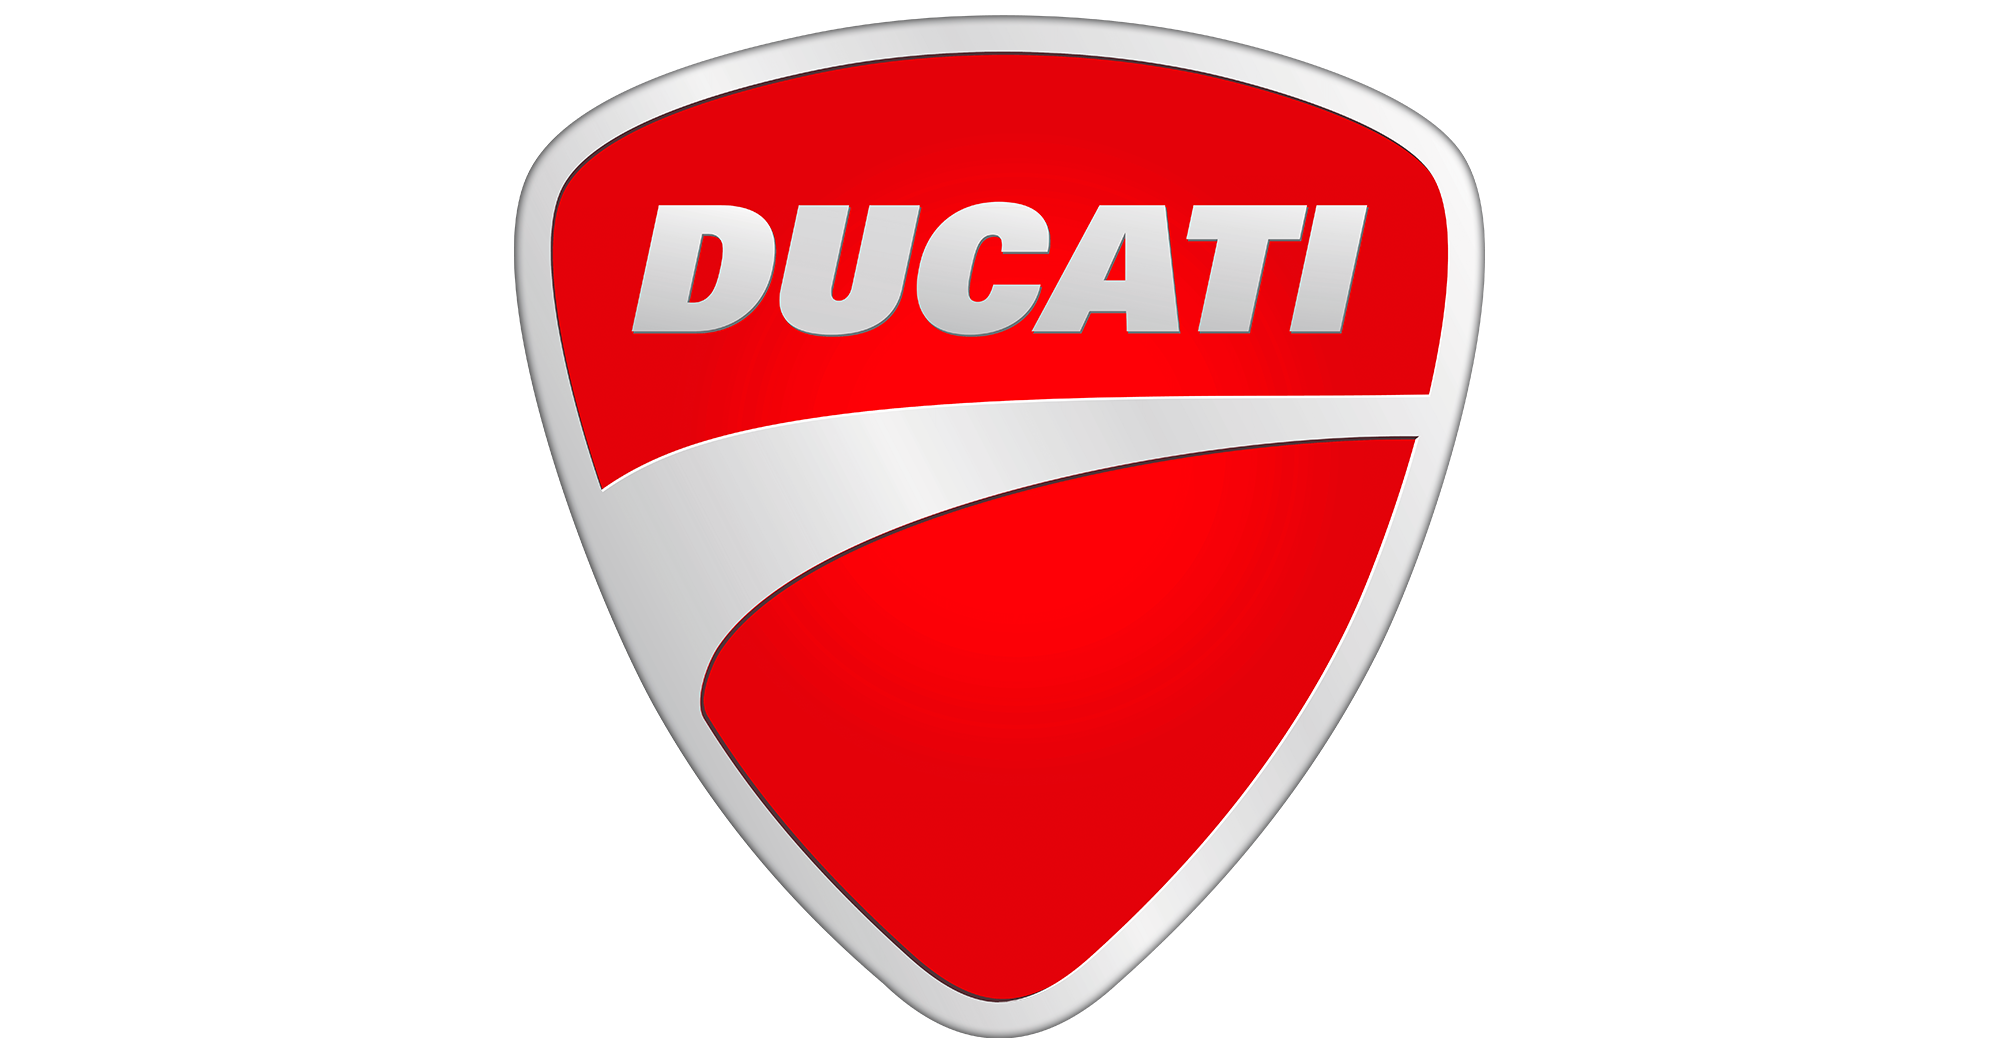 Italian Car Brands Companies And Manufacturers